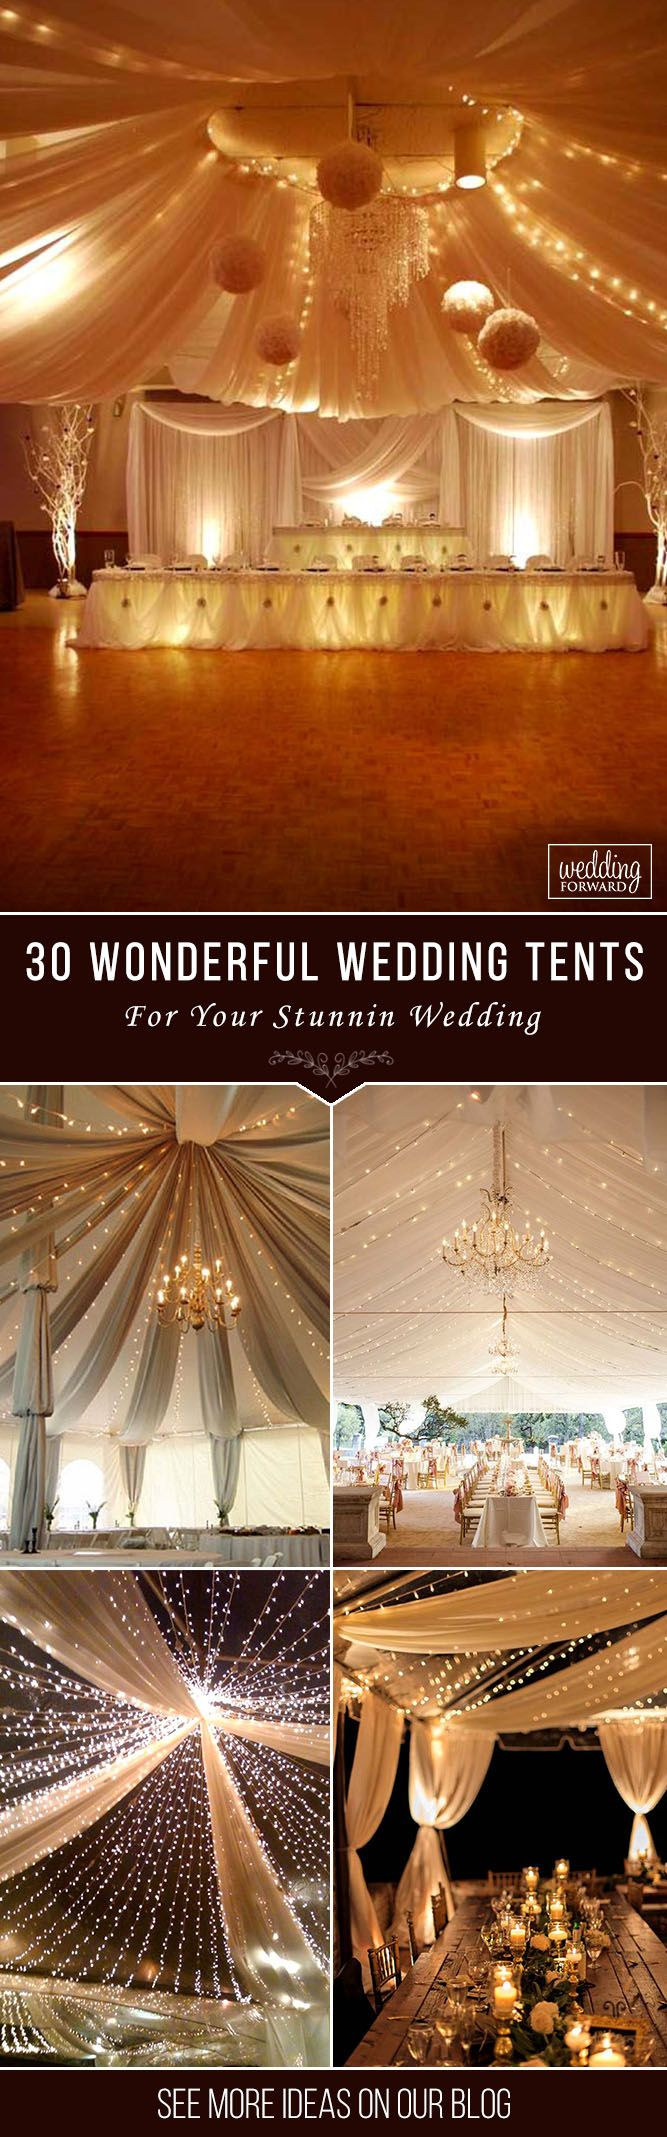 30 Wonderful Wedding Tent Ideas For A Wedding ❤ Look at the best wedding tent ideas that impress you. Everything should be perfect for your special day. Wish you pleasant viewing and happy planning. See more: http://www.weddingforward.com/wedding-tent/ ‎#wedding #decorations